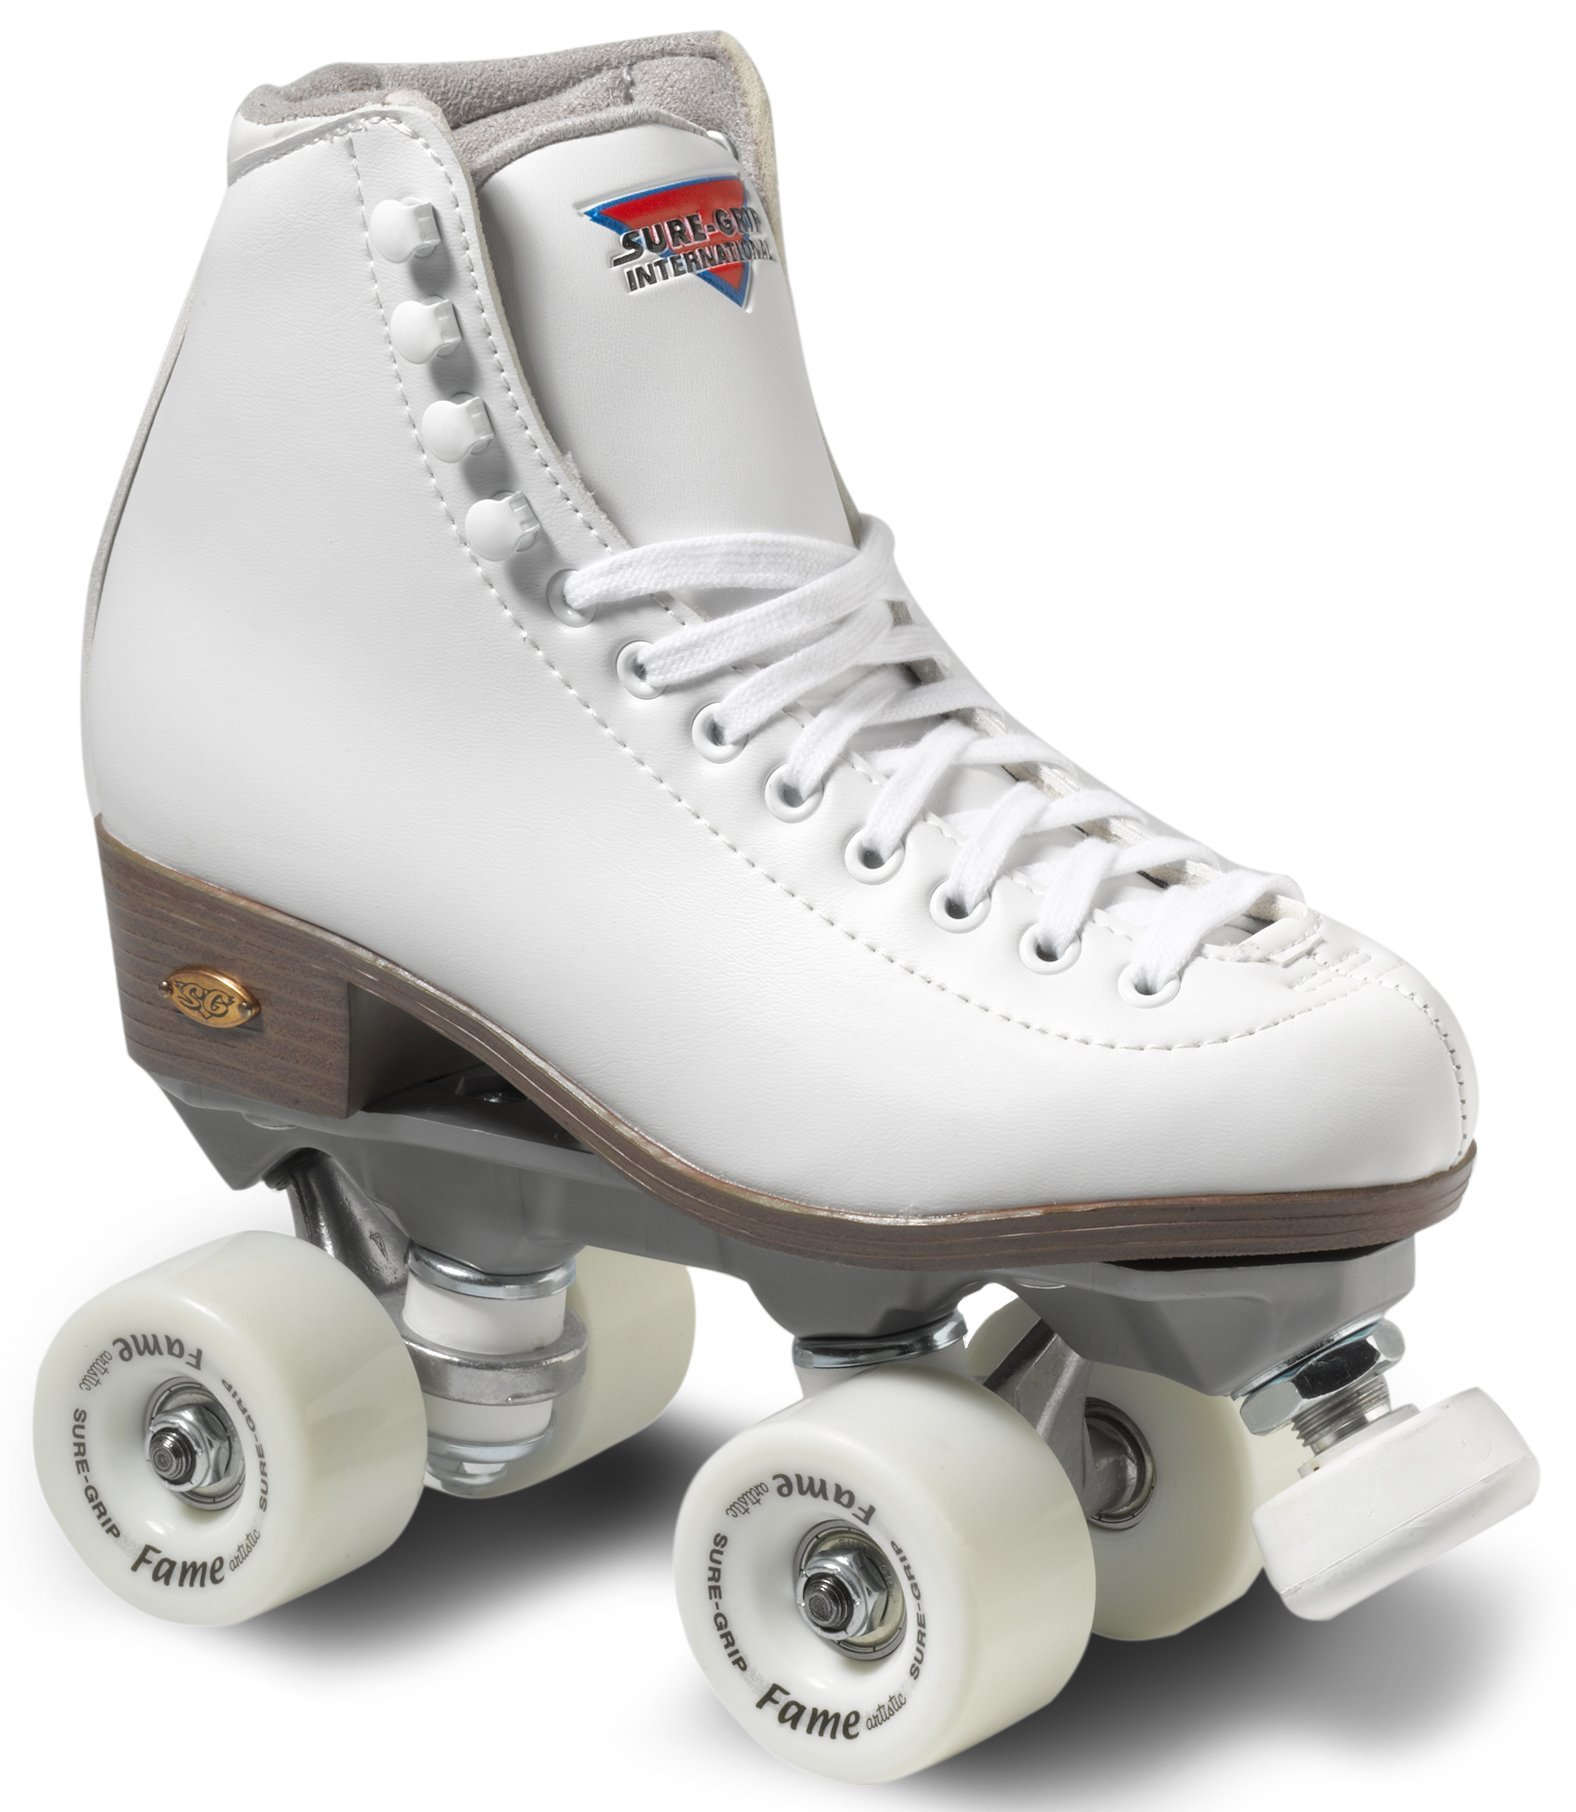 Sure-Grip White Fame Roller Skate by Sure-Grip